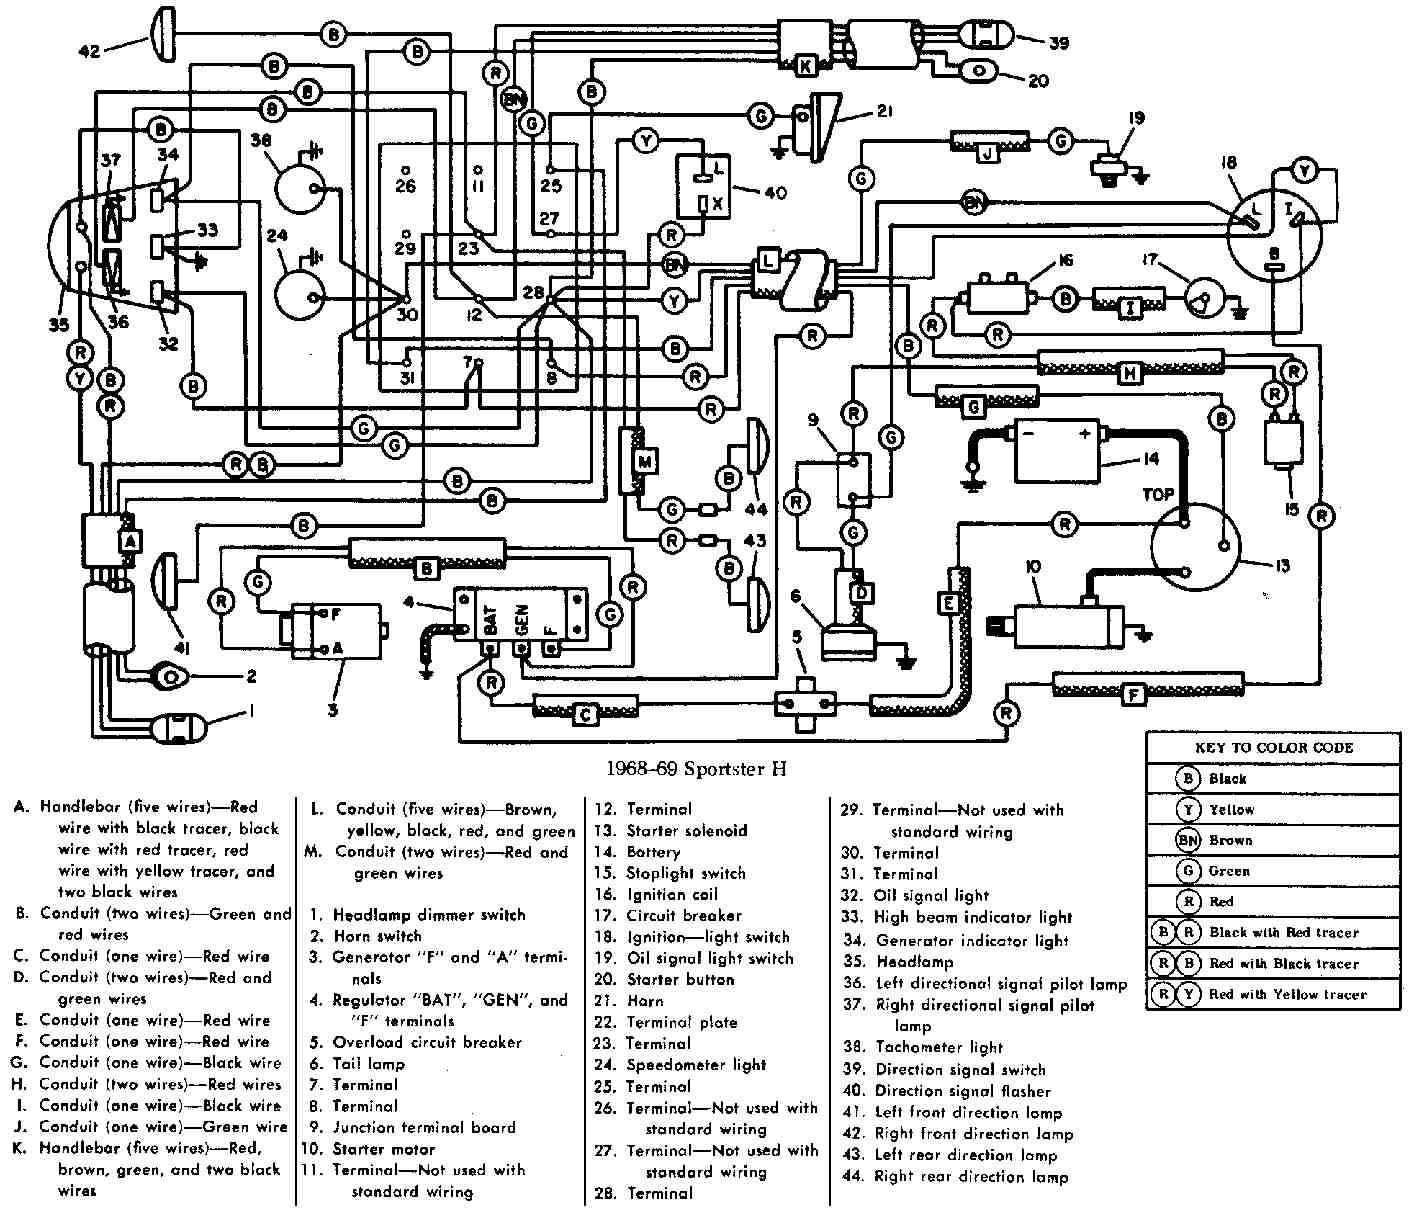 Harley Davidson - Motorcycles Manual PDF, Wiring Diagram ... on